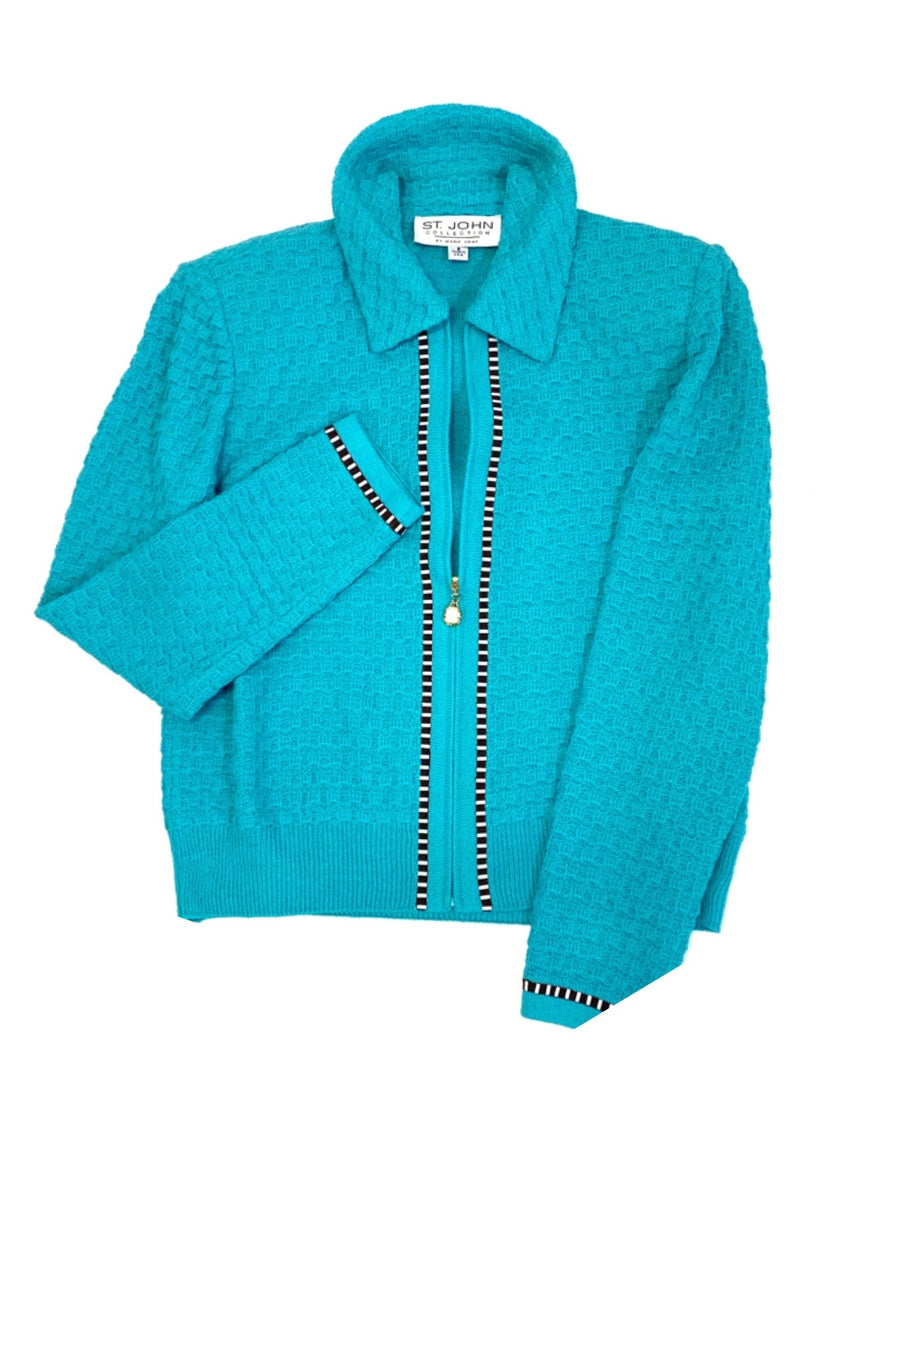 St John Collection Turquoise Zip Jacket | 6